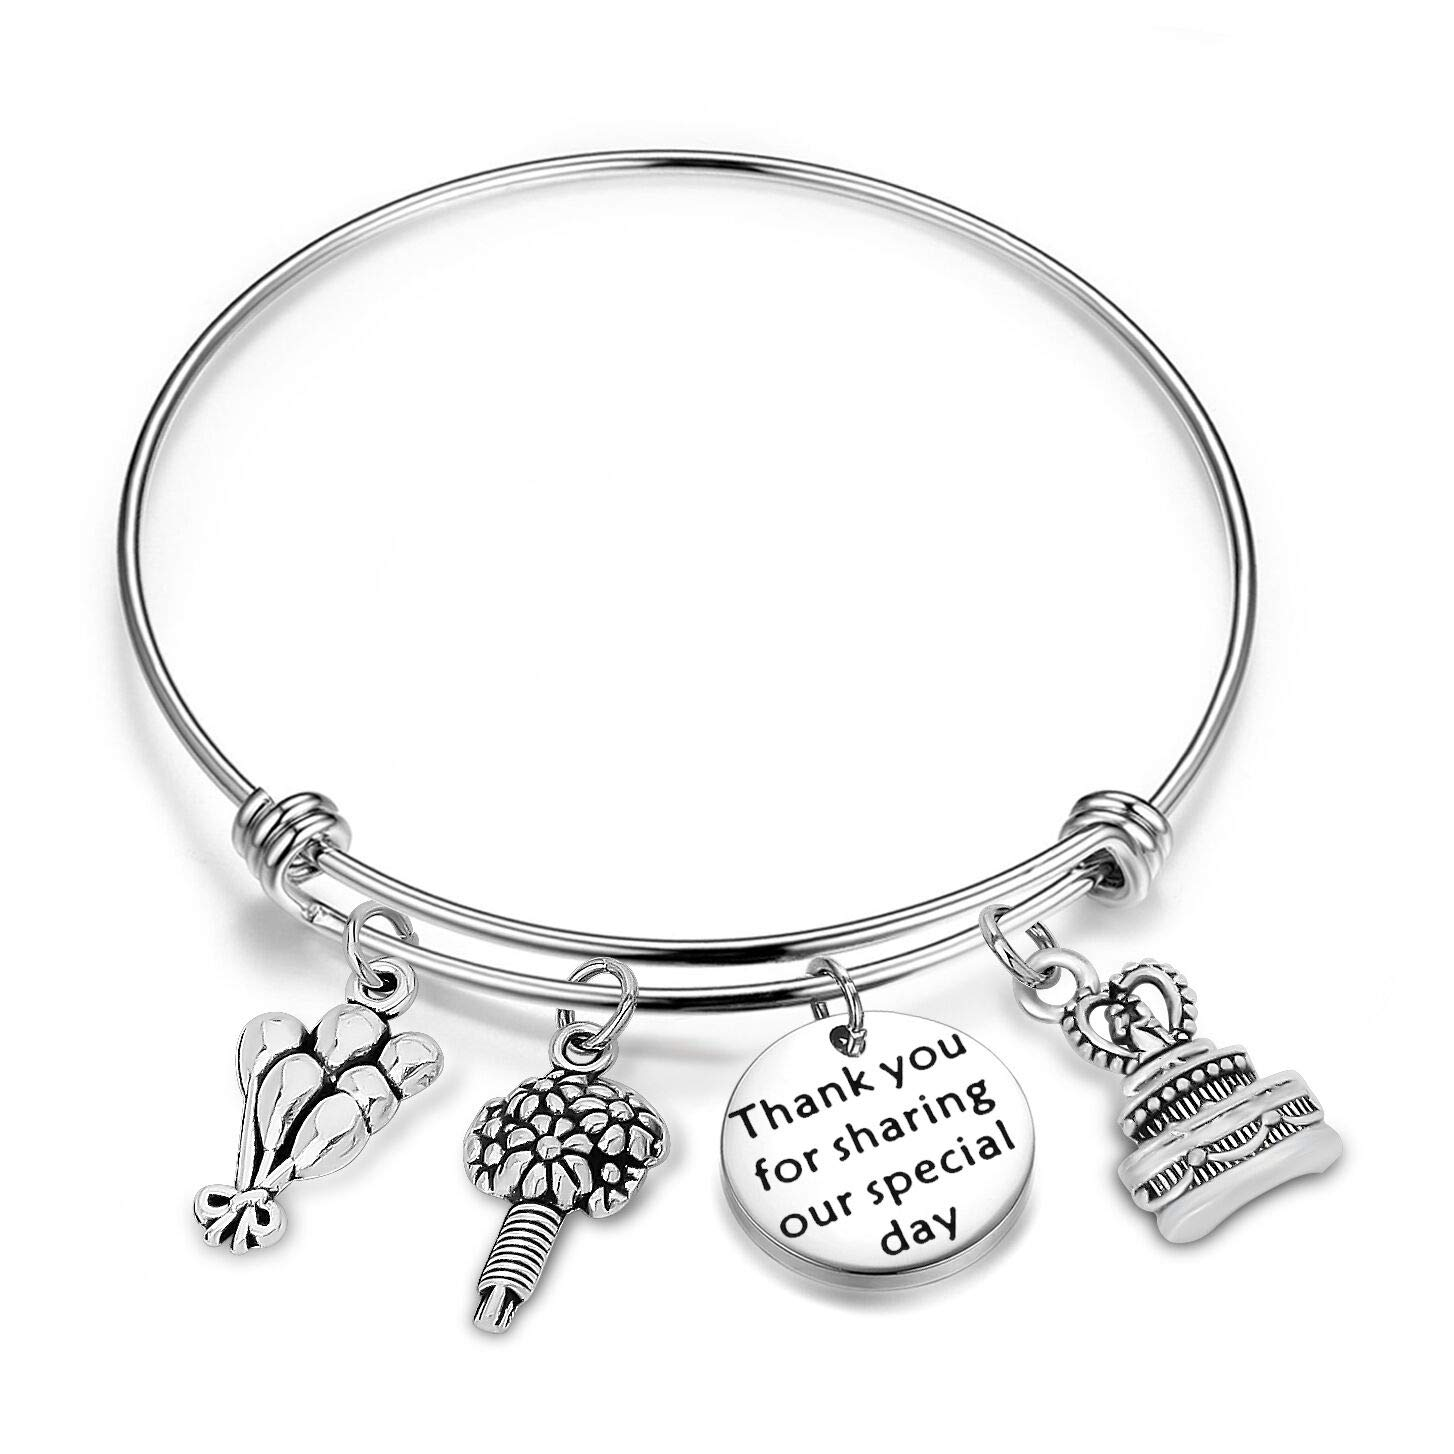 WUSUANED Thank You for Sharing Our Special Day Expandable Wire Bracelet Bangle Party Favor Gift for Wedding or Birthday (Wedding Favor Gift)